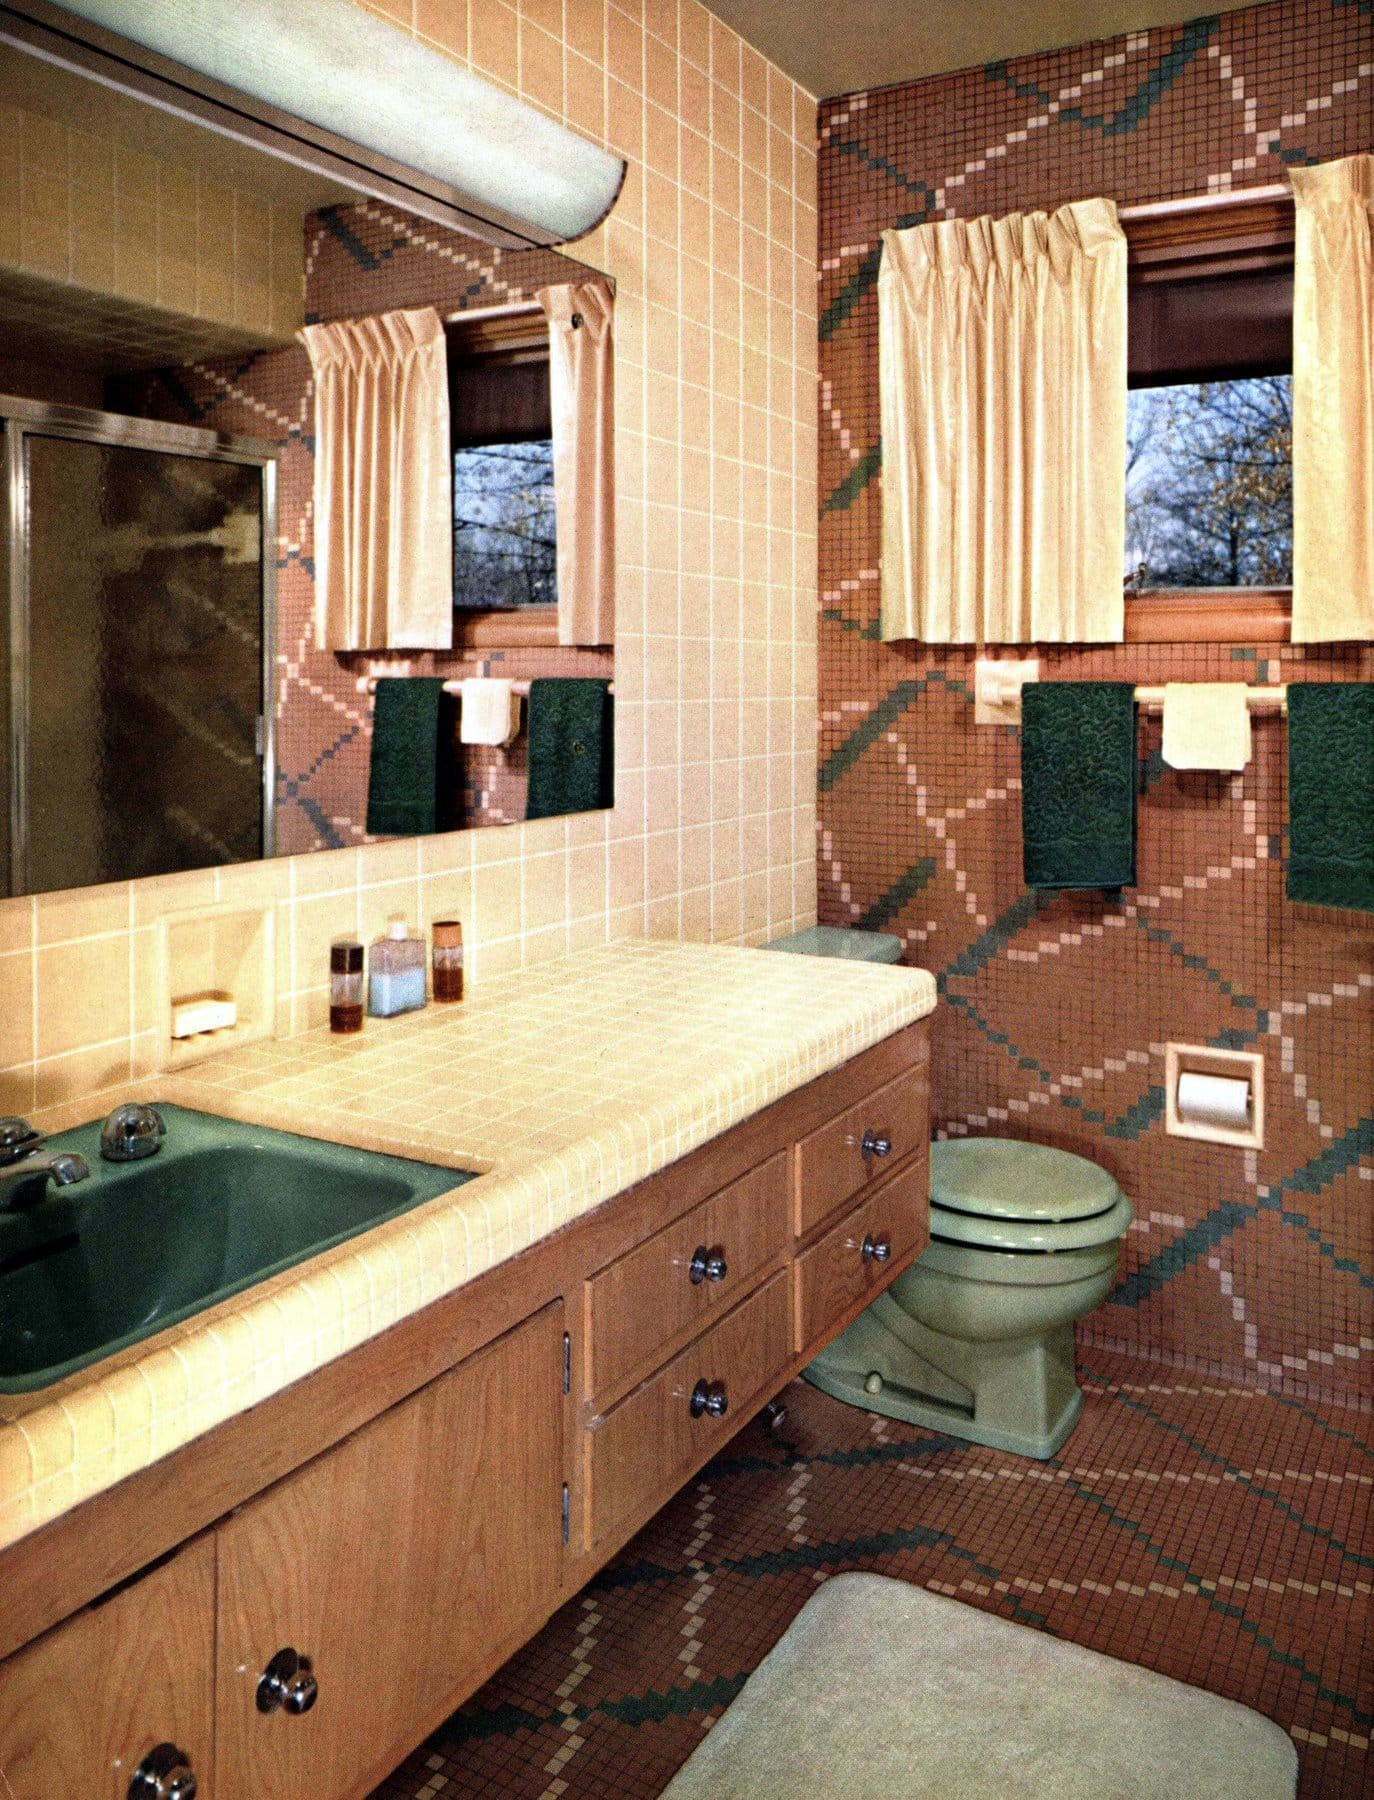 Vintage 1960s brown and beige creatively tiled bathroom